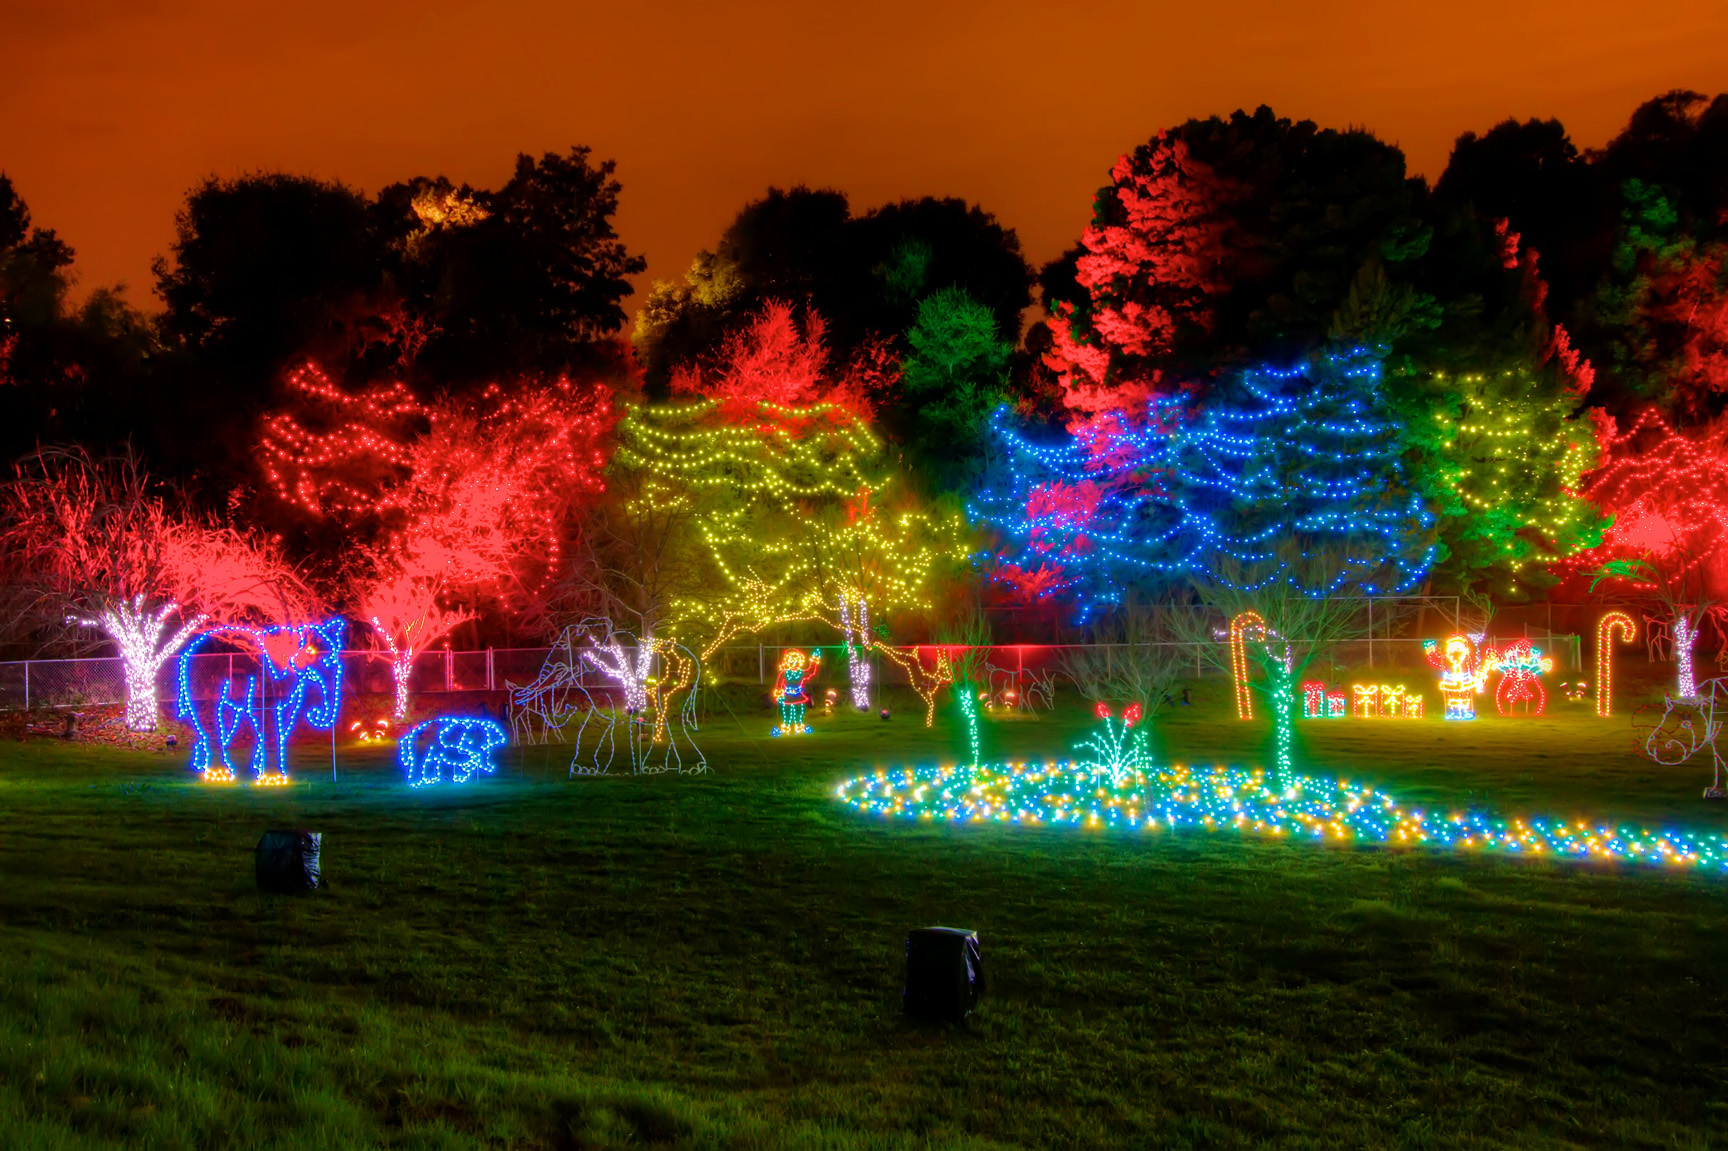 Event runs from 5 30pm 9 00pm tickets purchased for zoolights may